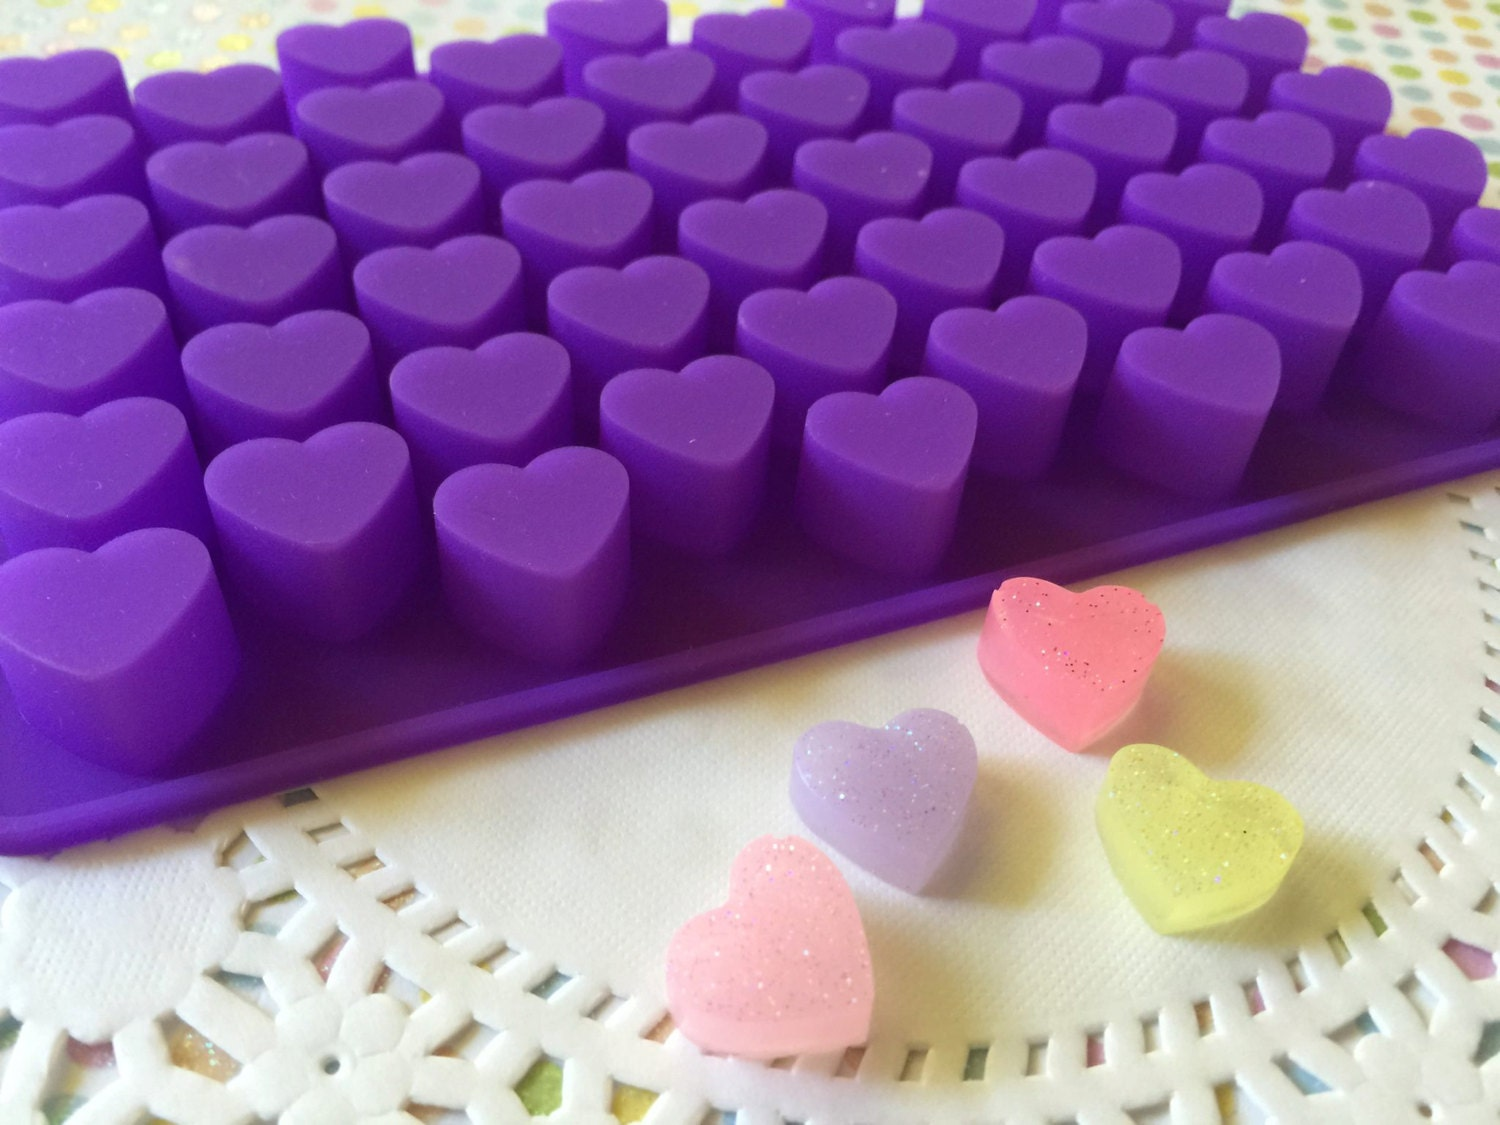 Soap Molds Wholesale Lot Soap Making Molds Silicone Molds – Fondos